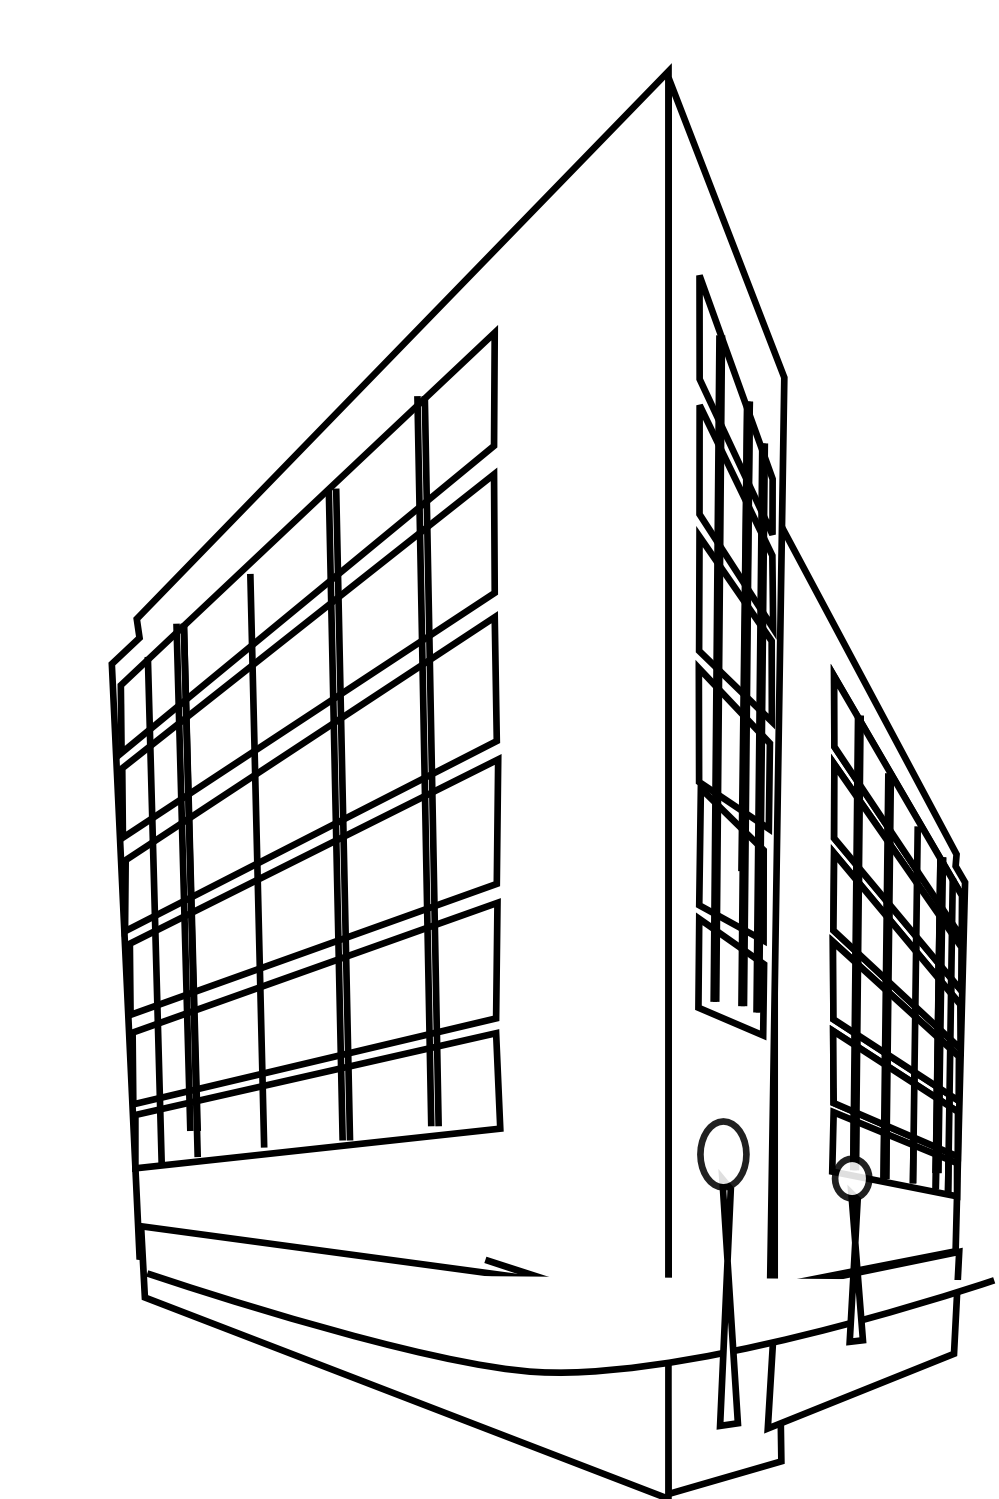 Building panda free images. Mall clipart black and white